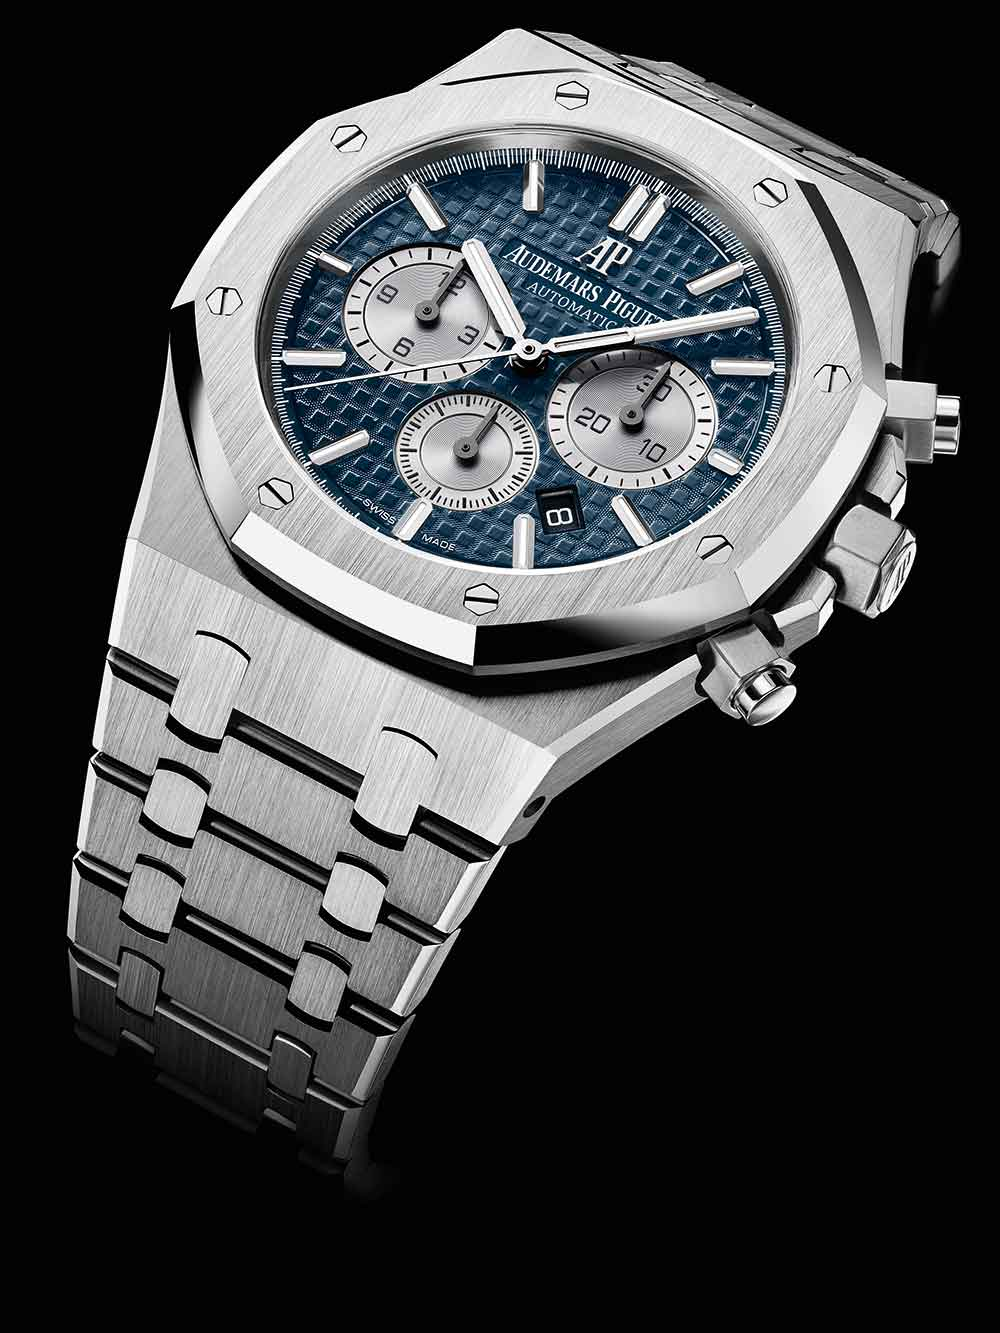 Audemars Piguet Royal Oak Chronograph RO.26331ST.OO.1220ST.01